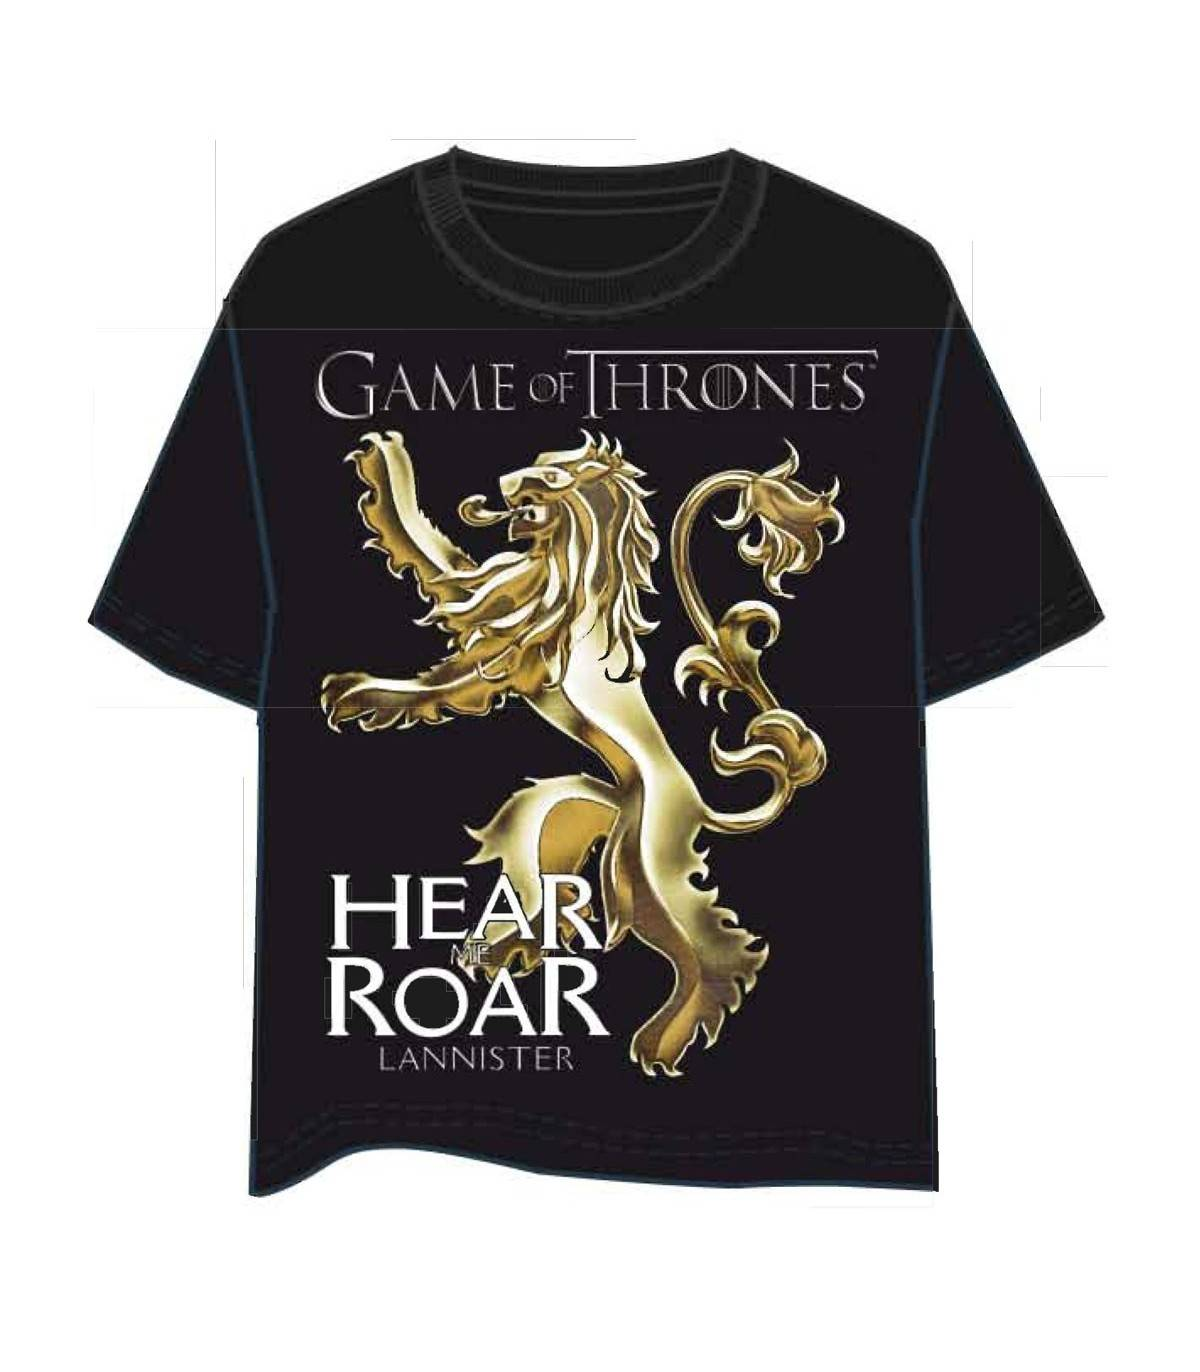 GAMES OF THRONES Camiseta JUEGO DE TRONOS 3565 M Negro